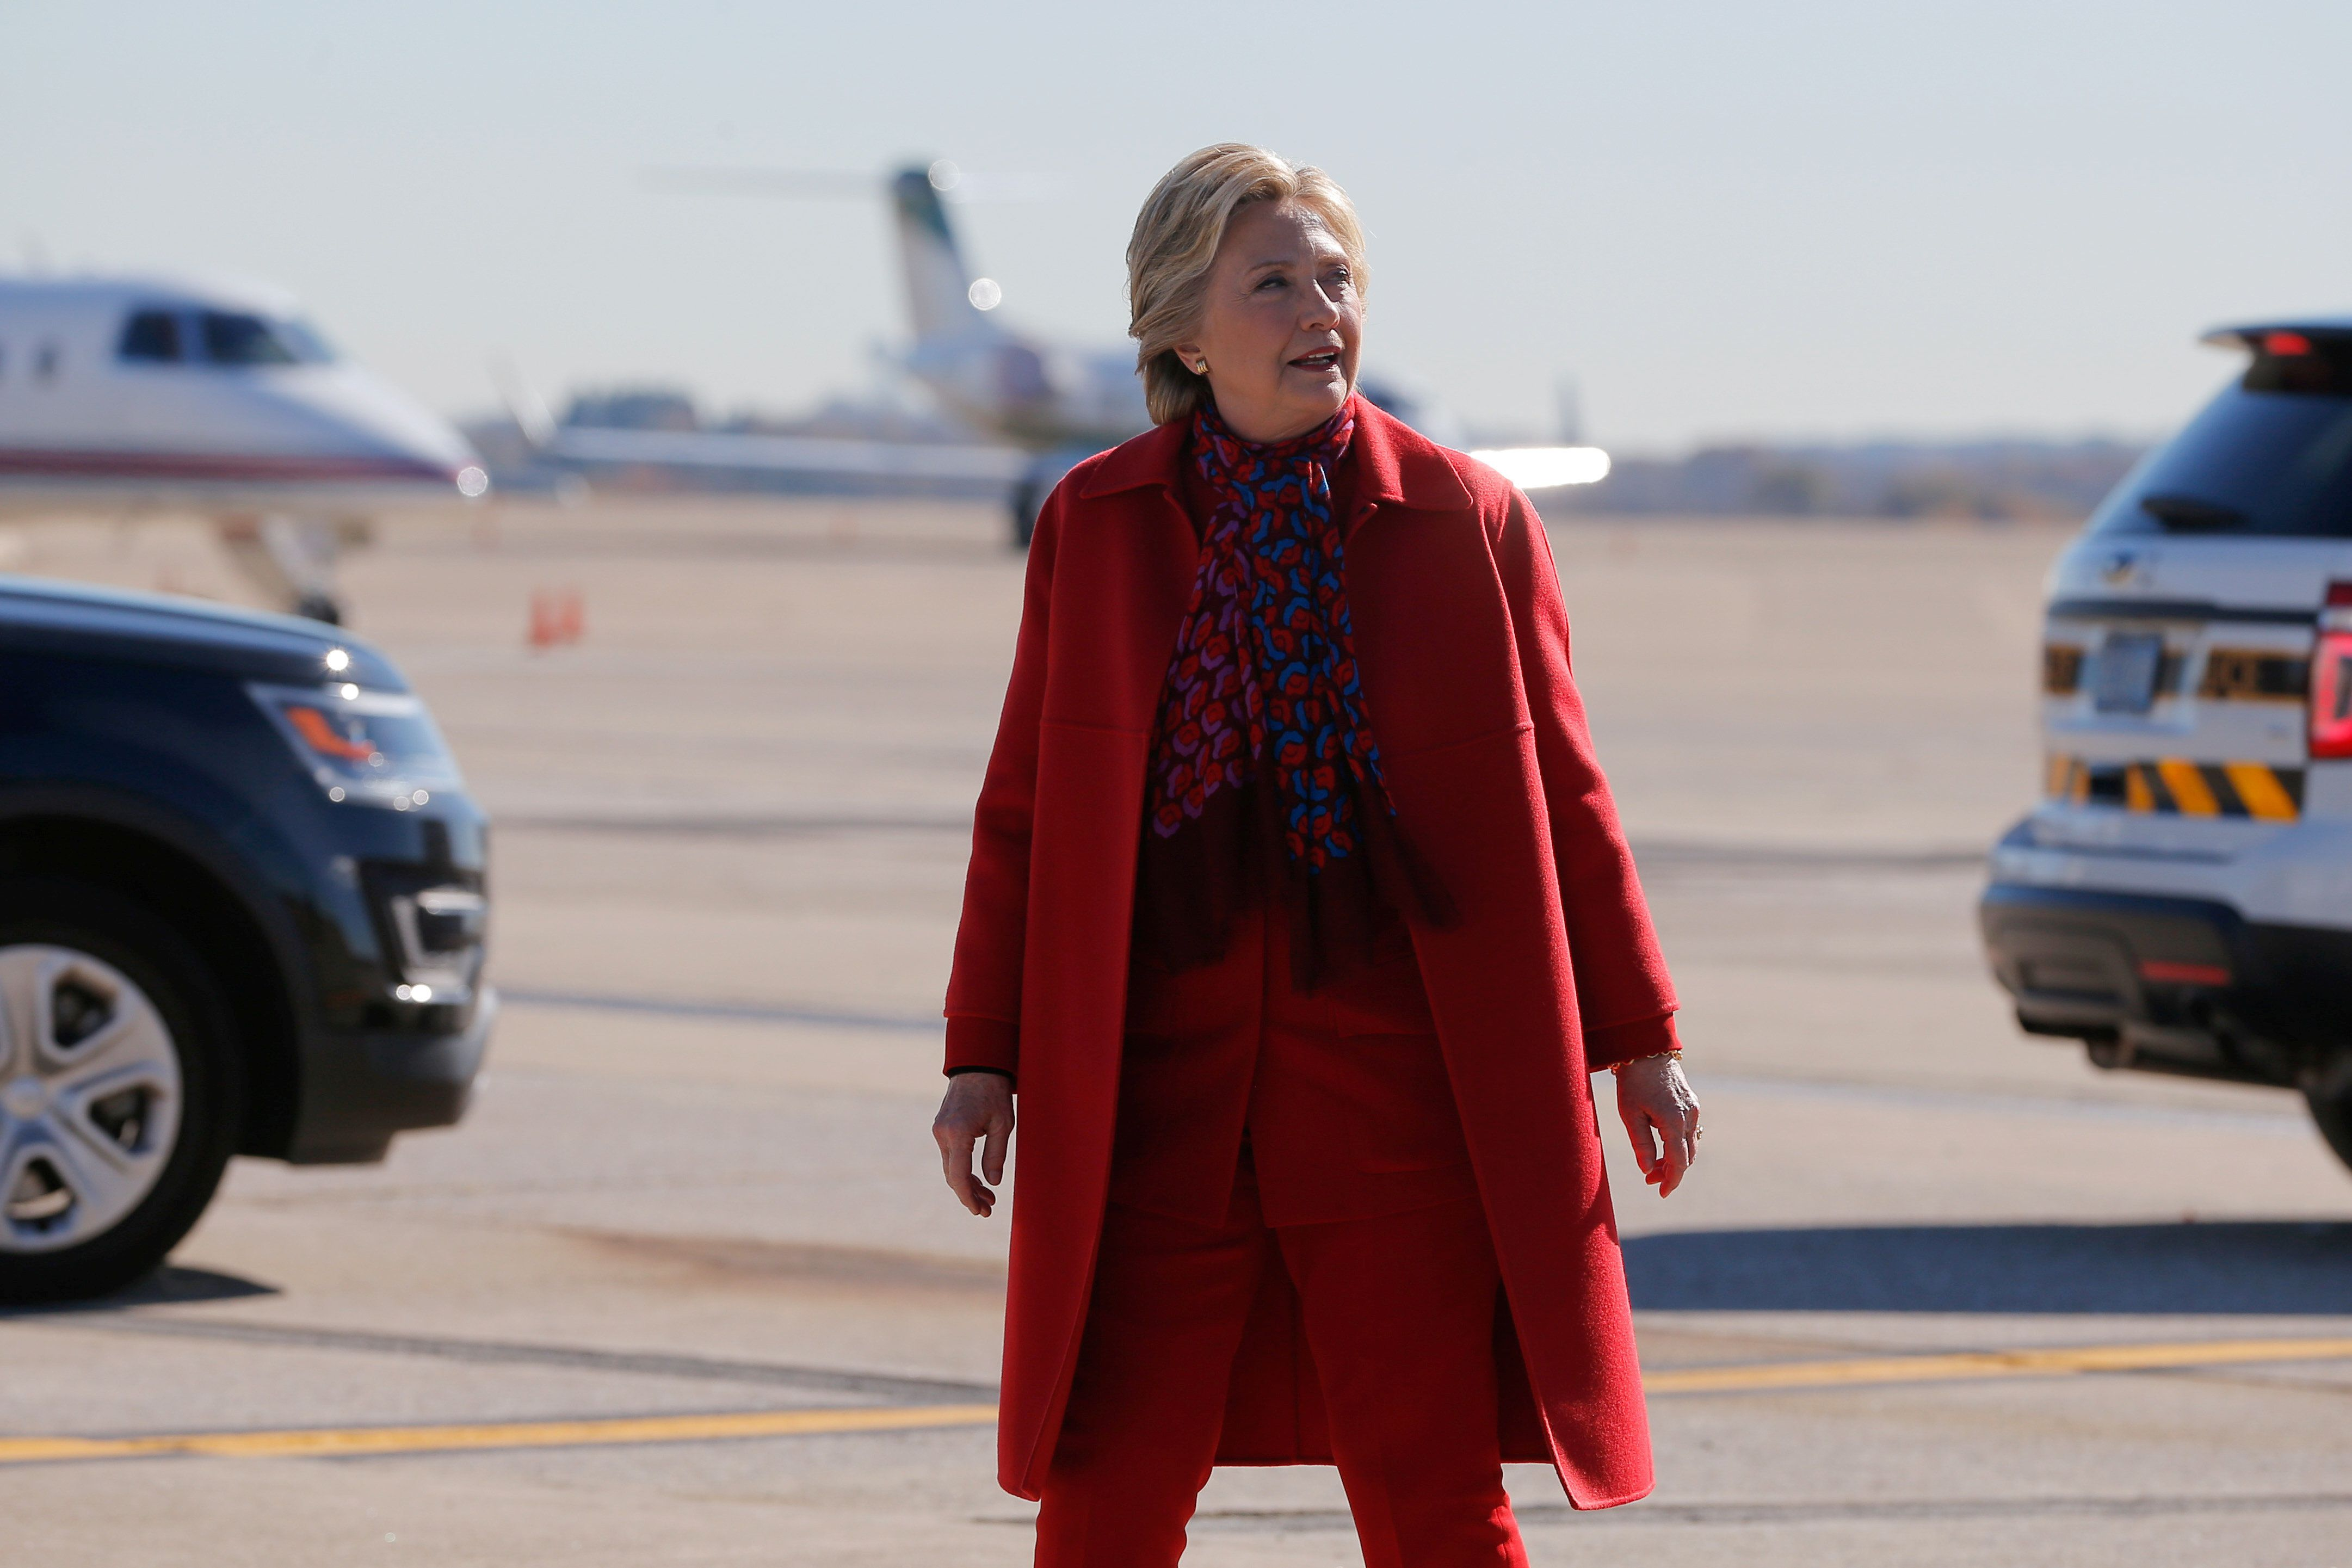 U.S. Democratic presidential nominee Hillary Clinton gets off her campaign plane for a rally in Pittsburgh, Pennsylvania, U.S. November 7, 2016, the final day of campaigning before the election.  REUTERS/Brian Snyder